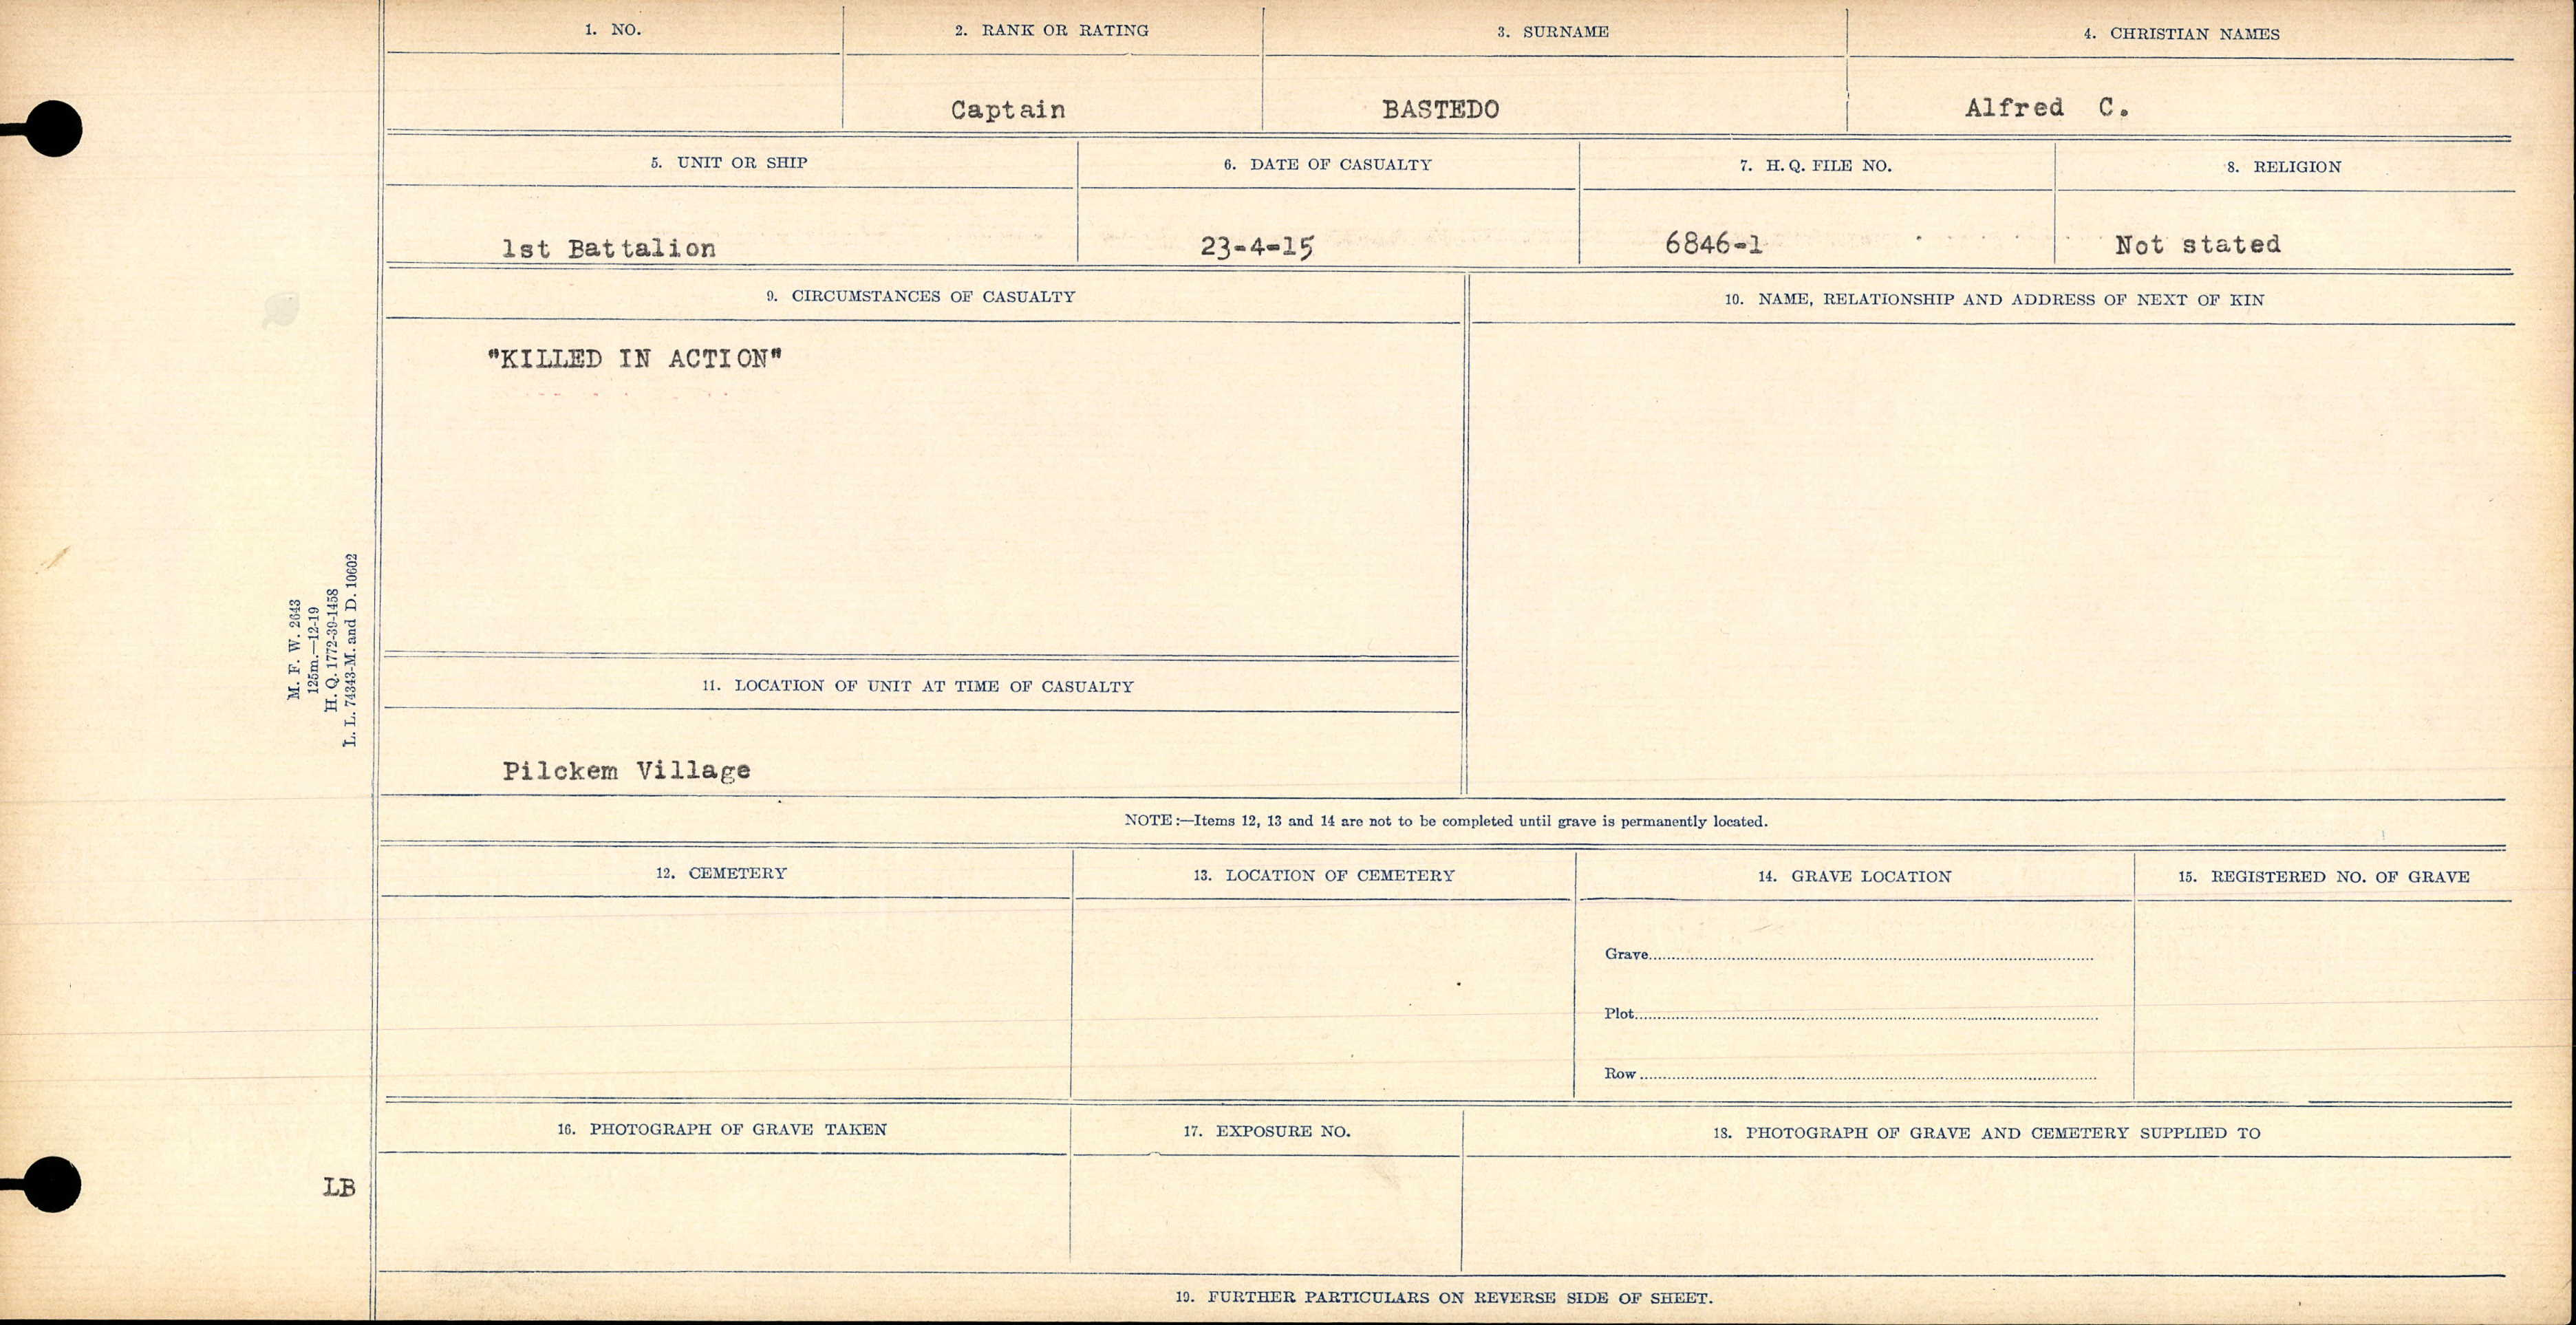 Circumstances of Death Registers– Circumstance of Death (front) record from the collection at Library and Archives Canada. Captain Bastedo is reported killed in action of 23 April 1915 near Pilckem Village.